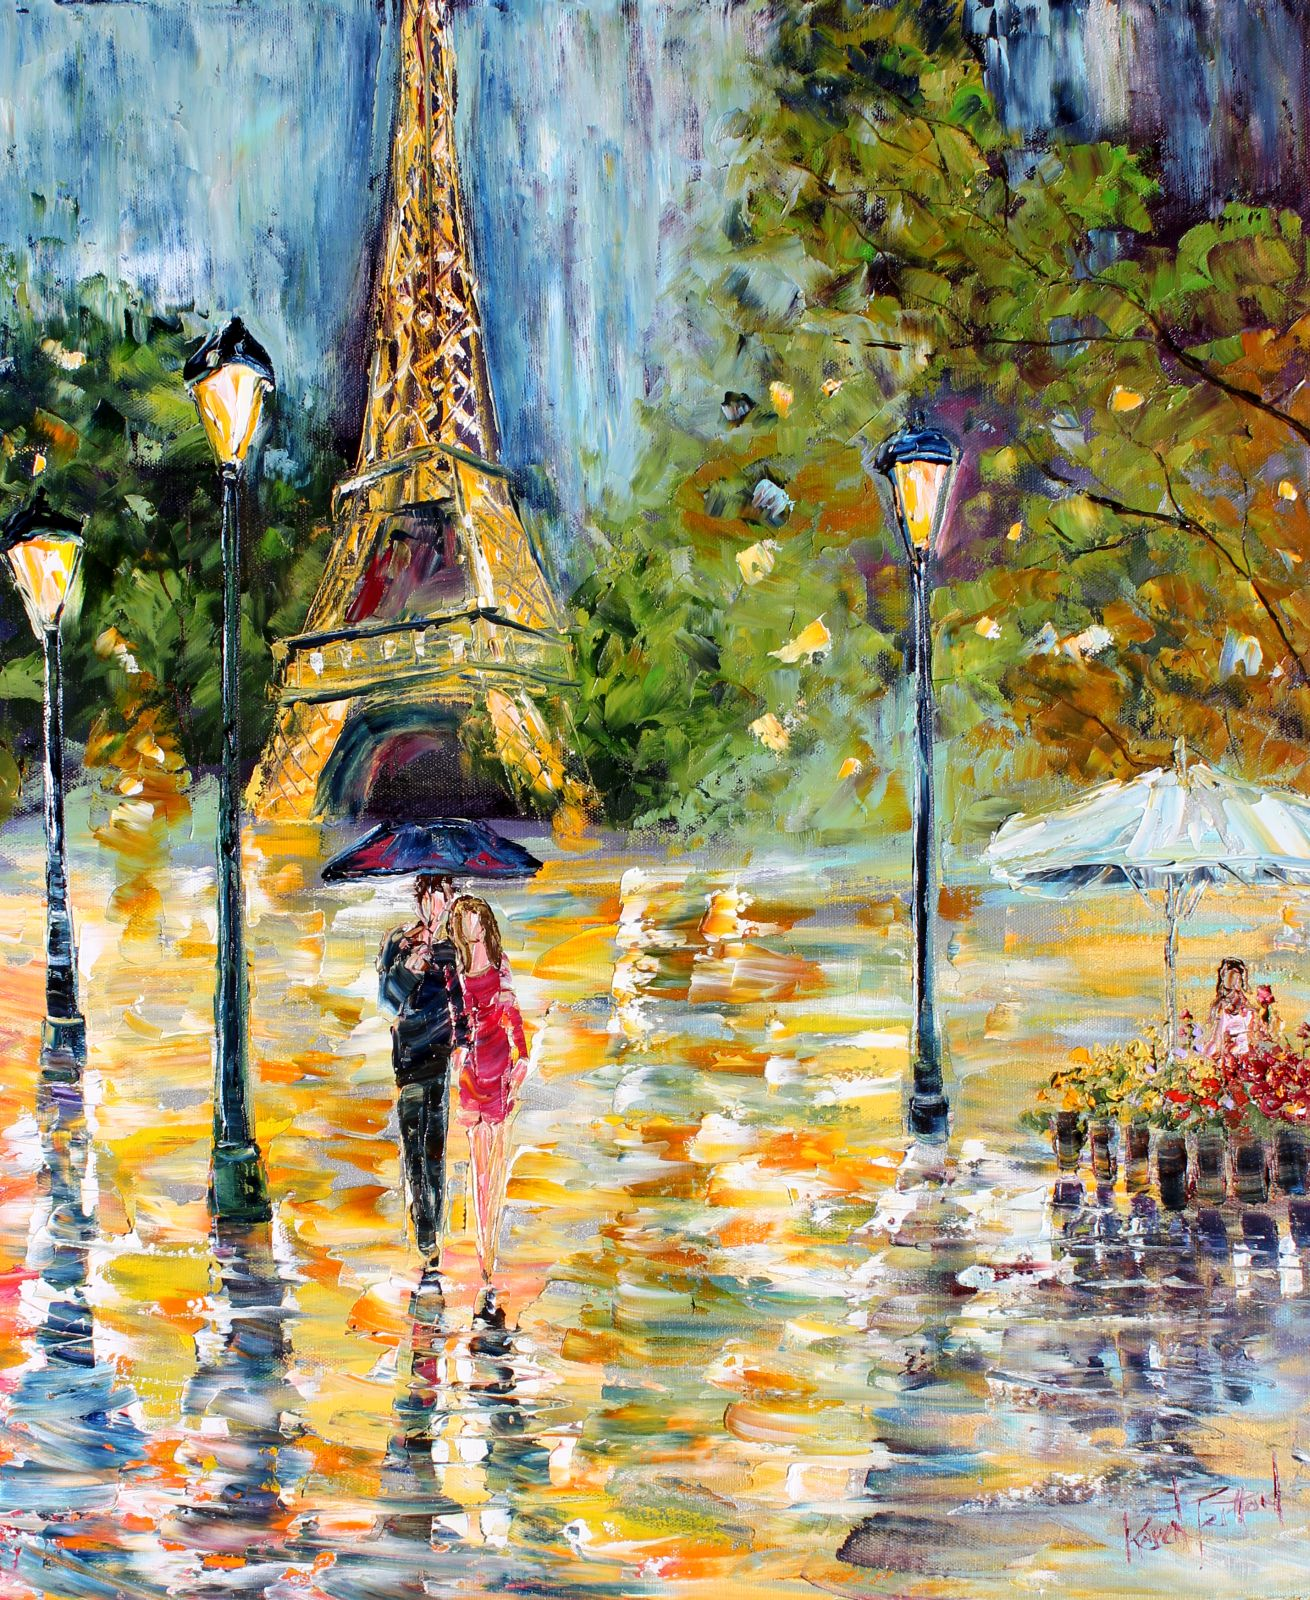 Karen Tarlton - Page 3 Original+oil+painting+Paris+Night+Romance+palette+knife+fine+art+impressionism+by+Karen+Tarlton+eBay+003i